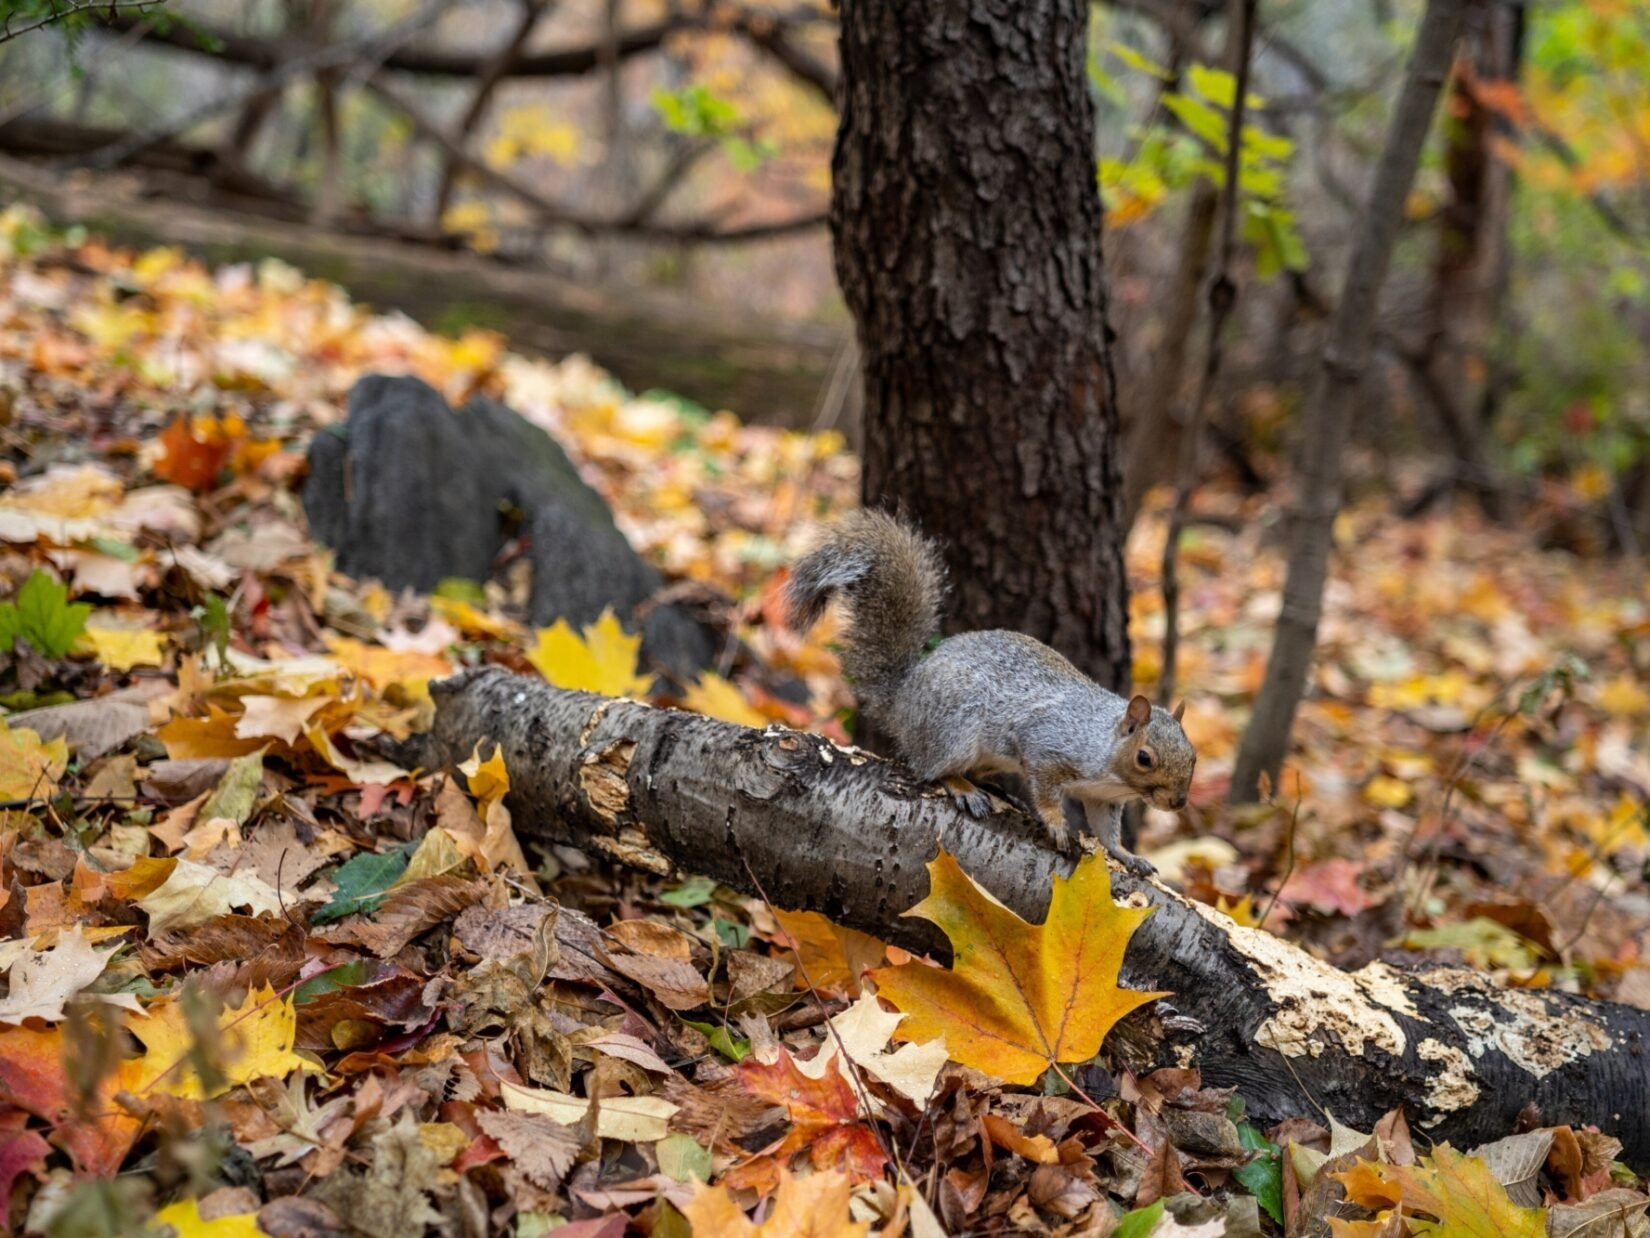 A squirrel gambols on a fallen branch on the leaf-strewn floor of the Hallett Nature Sanctuary